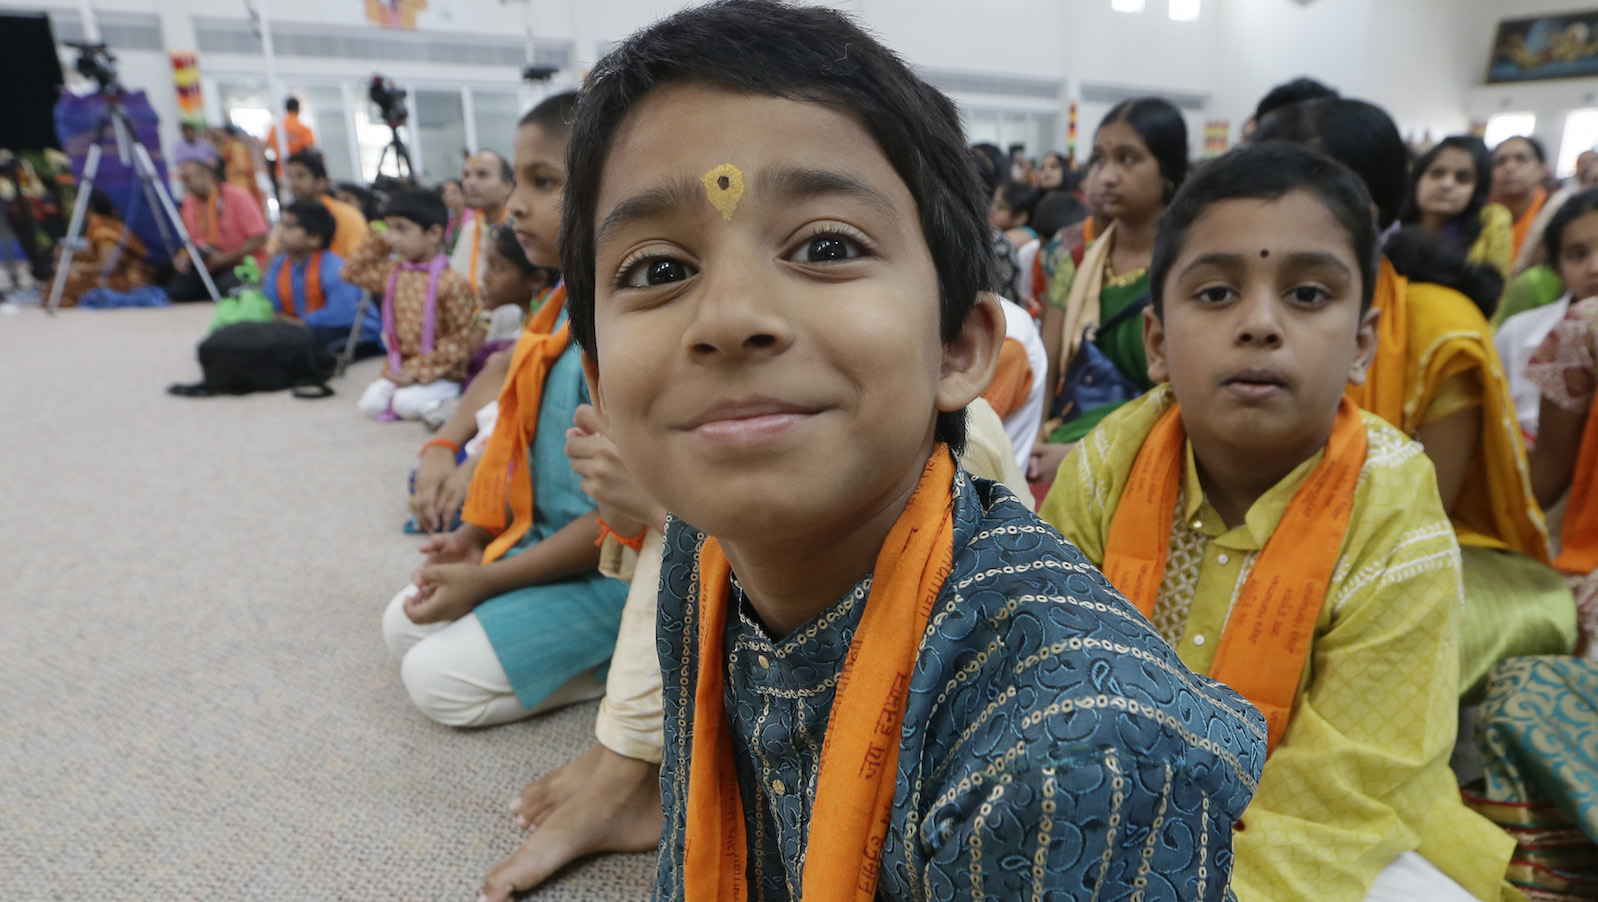 In this Saturday, Aug. 22, 2015, photo, devotees participate in events at the Karya Siddhi Hanuman Temple that serves the Asian Indian community in Frisco, Texas. Immigrants from China and India, many with student or work visas, have overtaken Mexicans as the largest groups coming into the U.S., according to U.S Census Bureau.